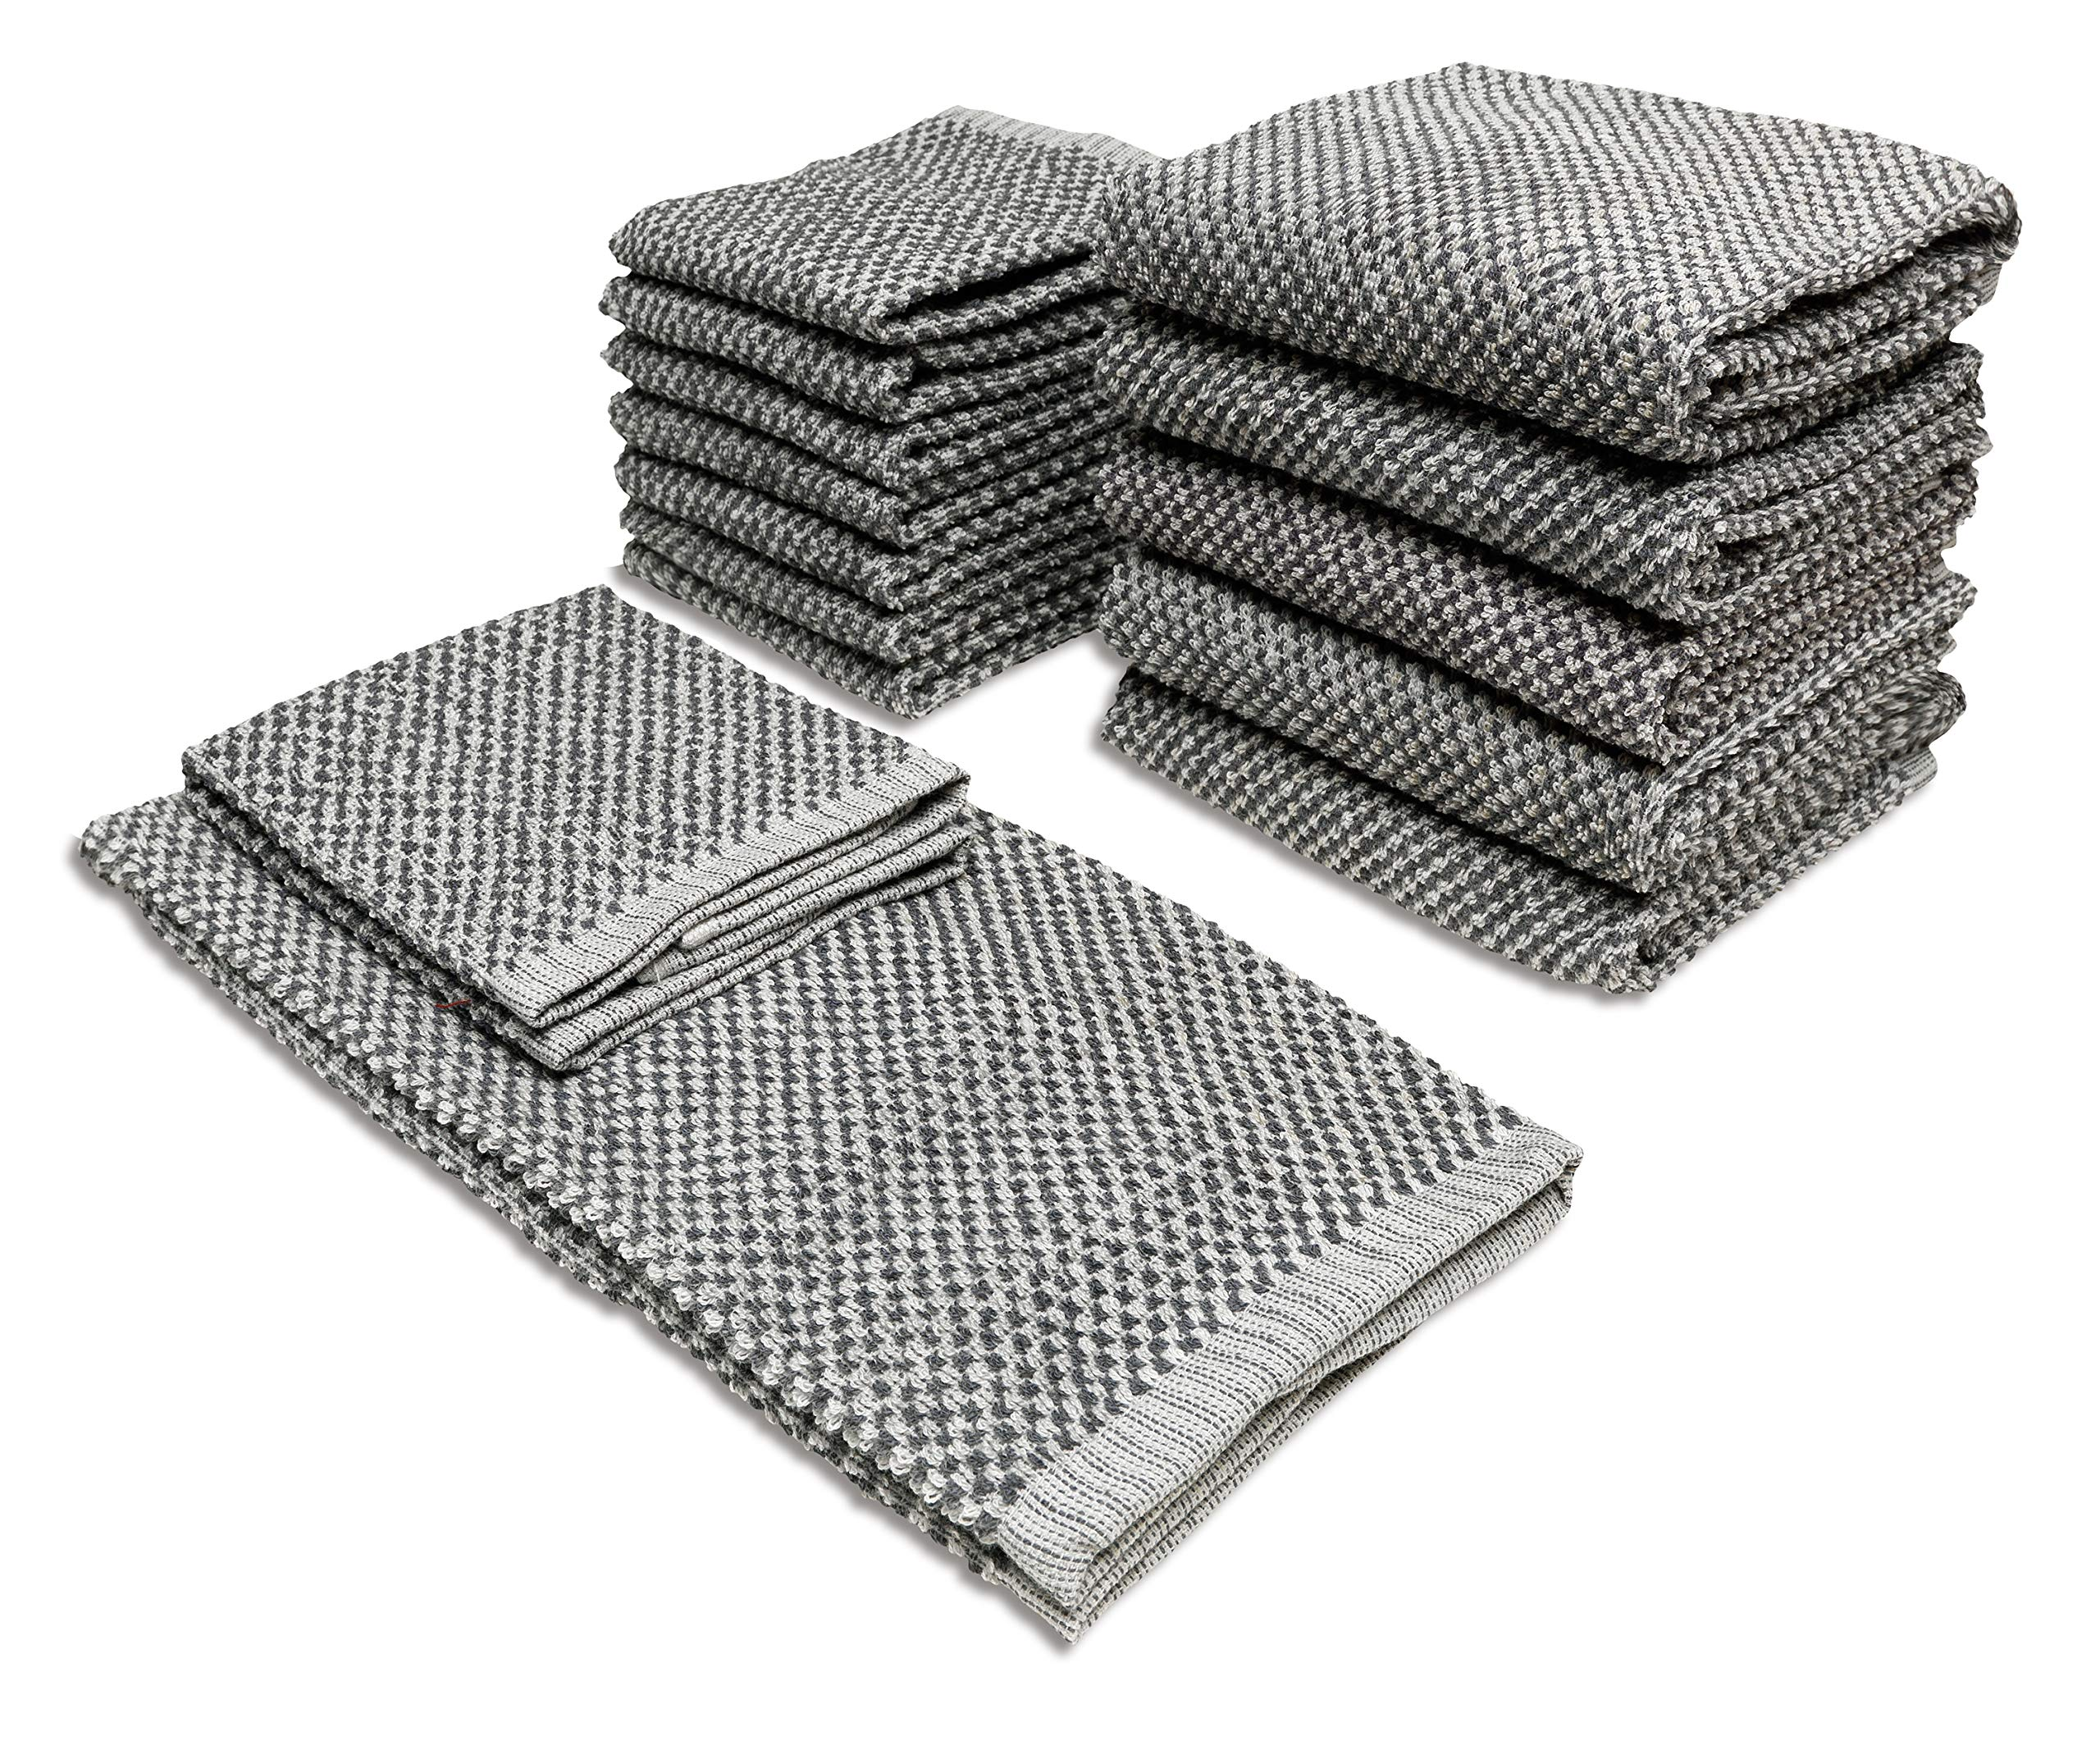 Popular Home 934694 Bethany Kitchen Towel, One Size, Steel-Grey